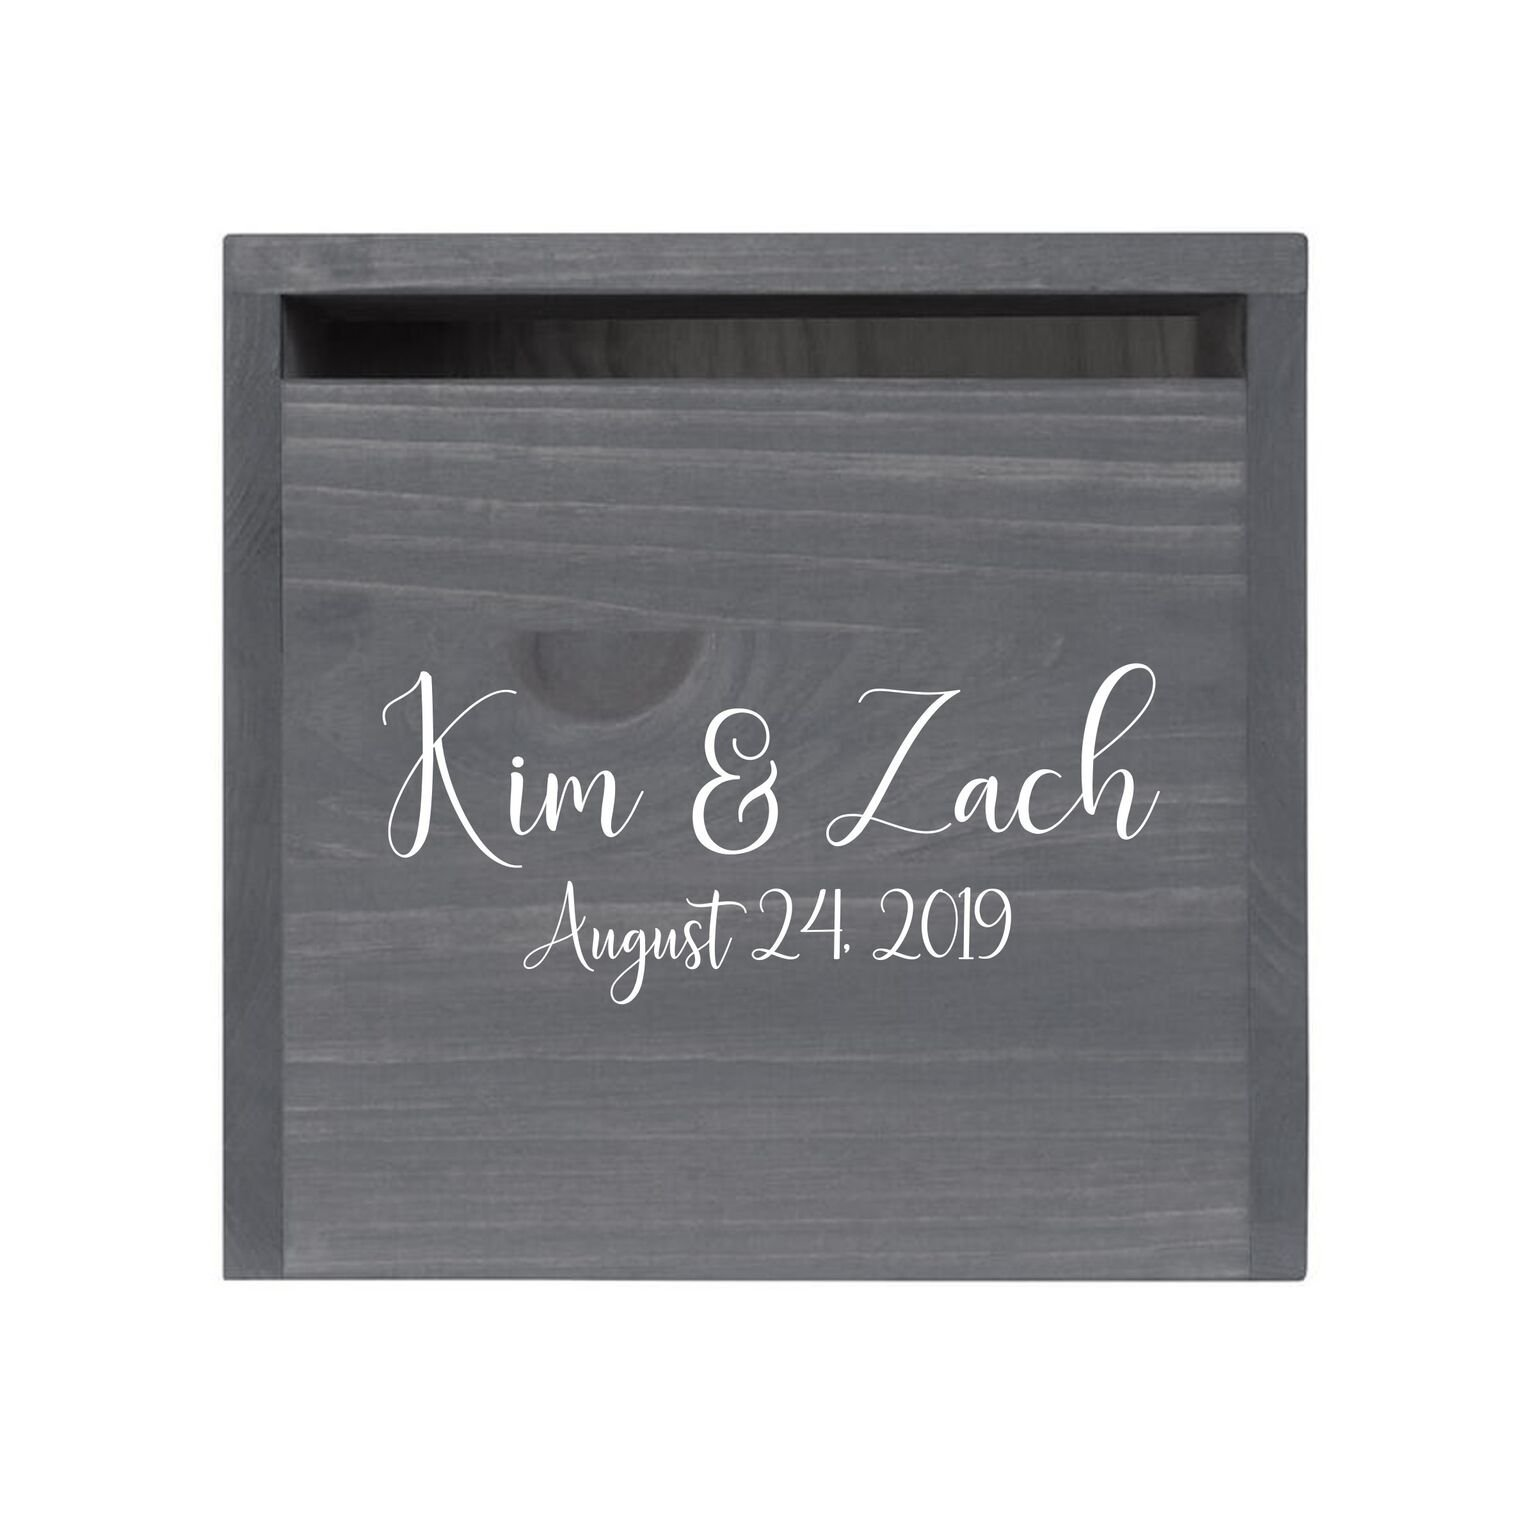 """LifeSong Milestones Personalized First Names Rustic Wooden Wedding Card Box Custom Card Holder with Front Slot for NewlyWeds Couples Reception 13.5"""" L x 12"""" W x 12.5"""" T (Grey)"""